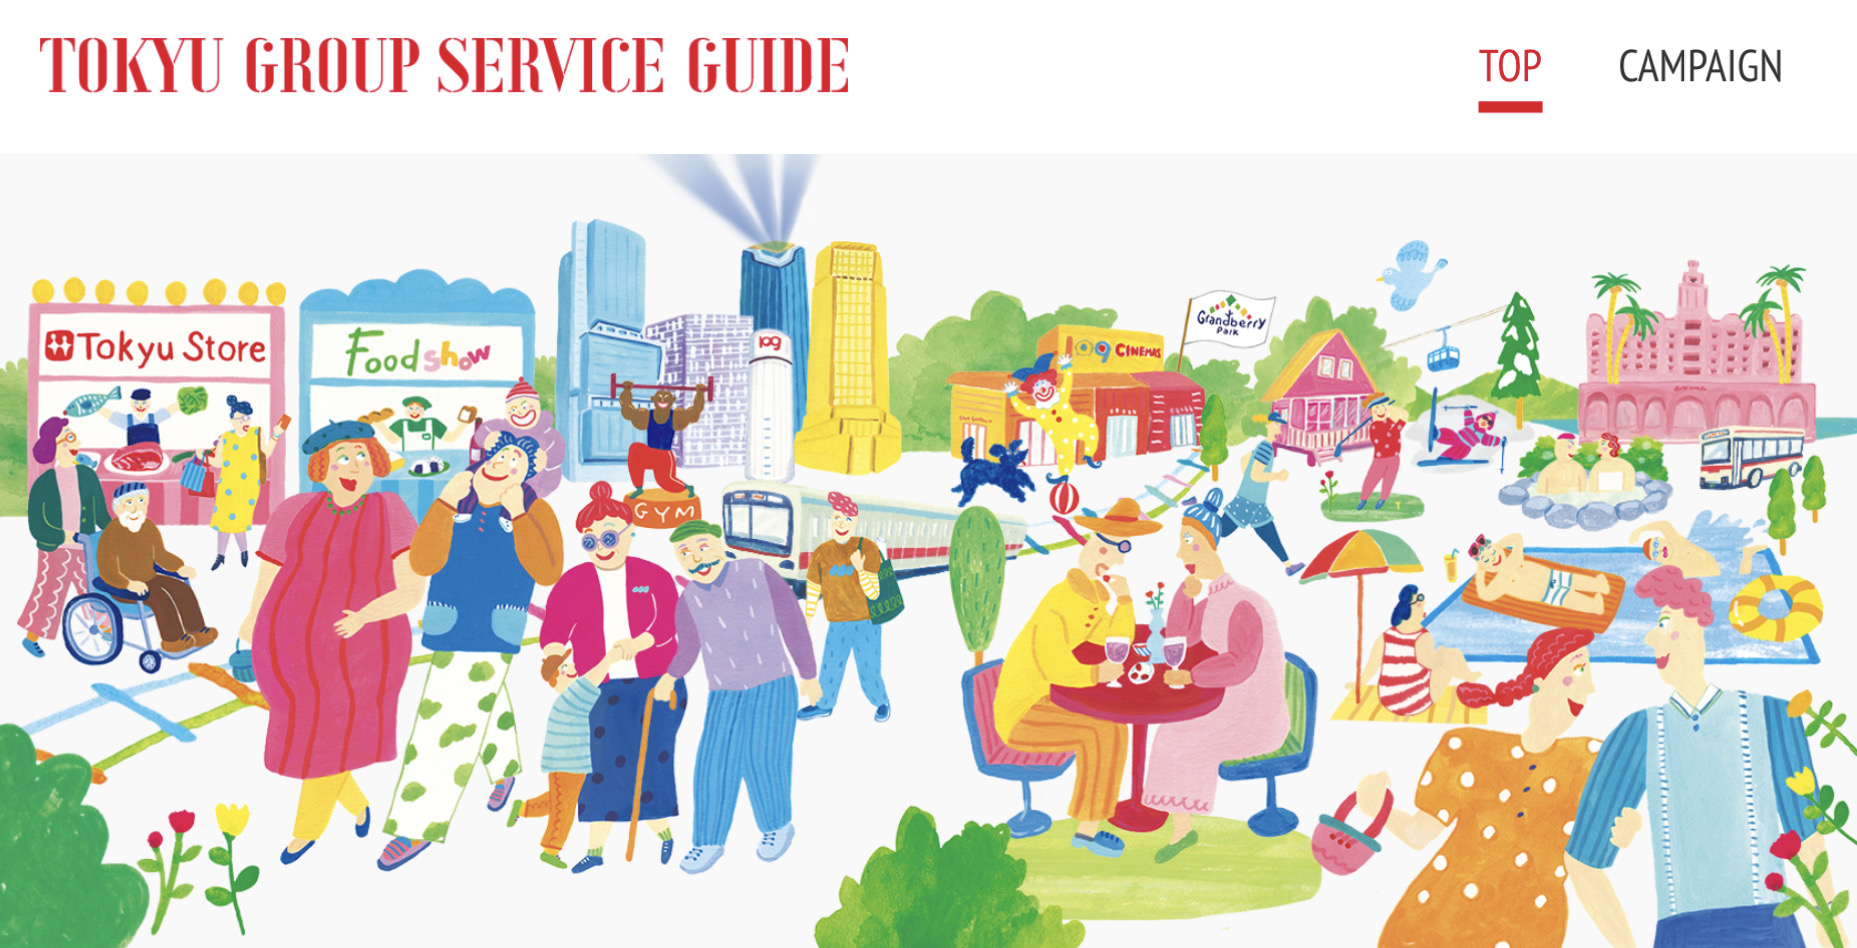 『TOKYU GROUP SERVICE GUIDE』(東急株式会社)